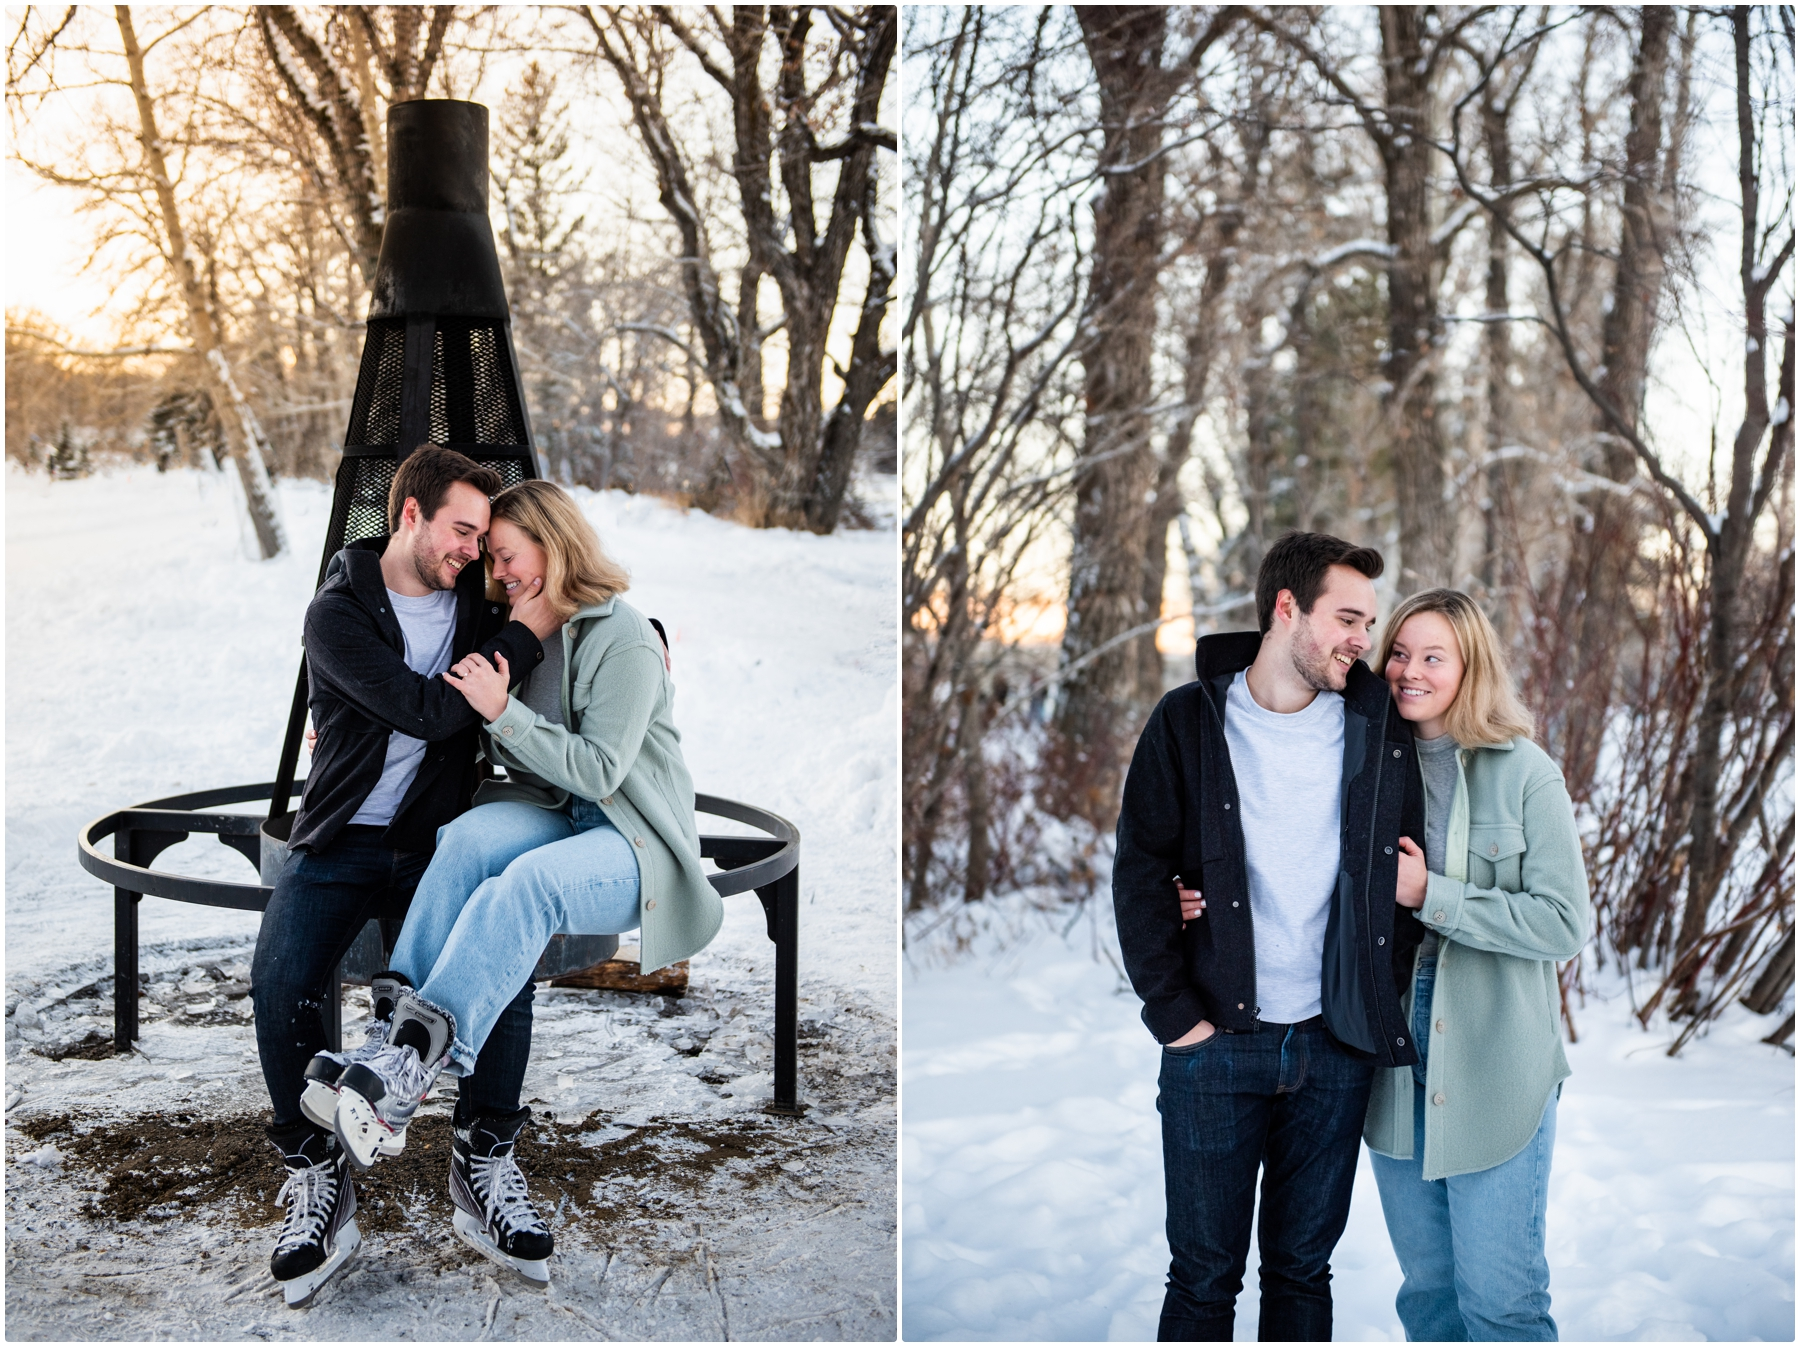 Calgary Bowness Park Skating Engagement Photos